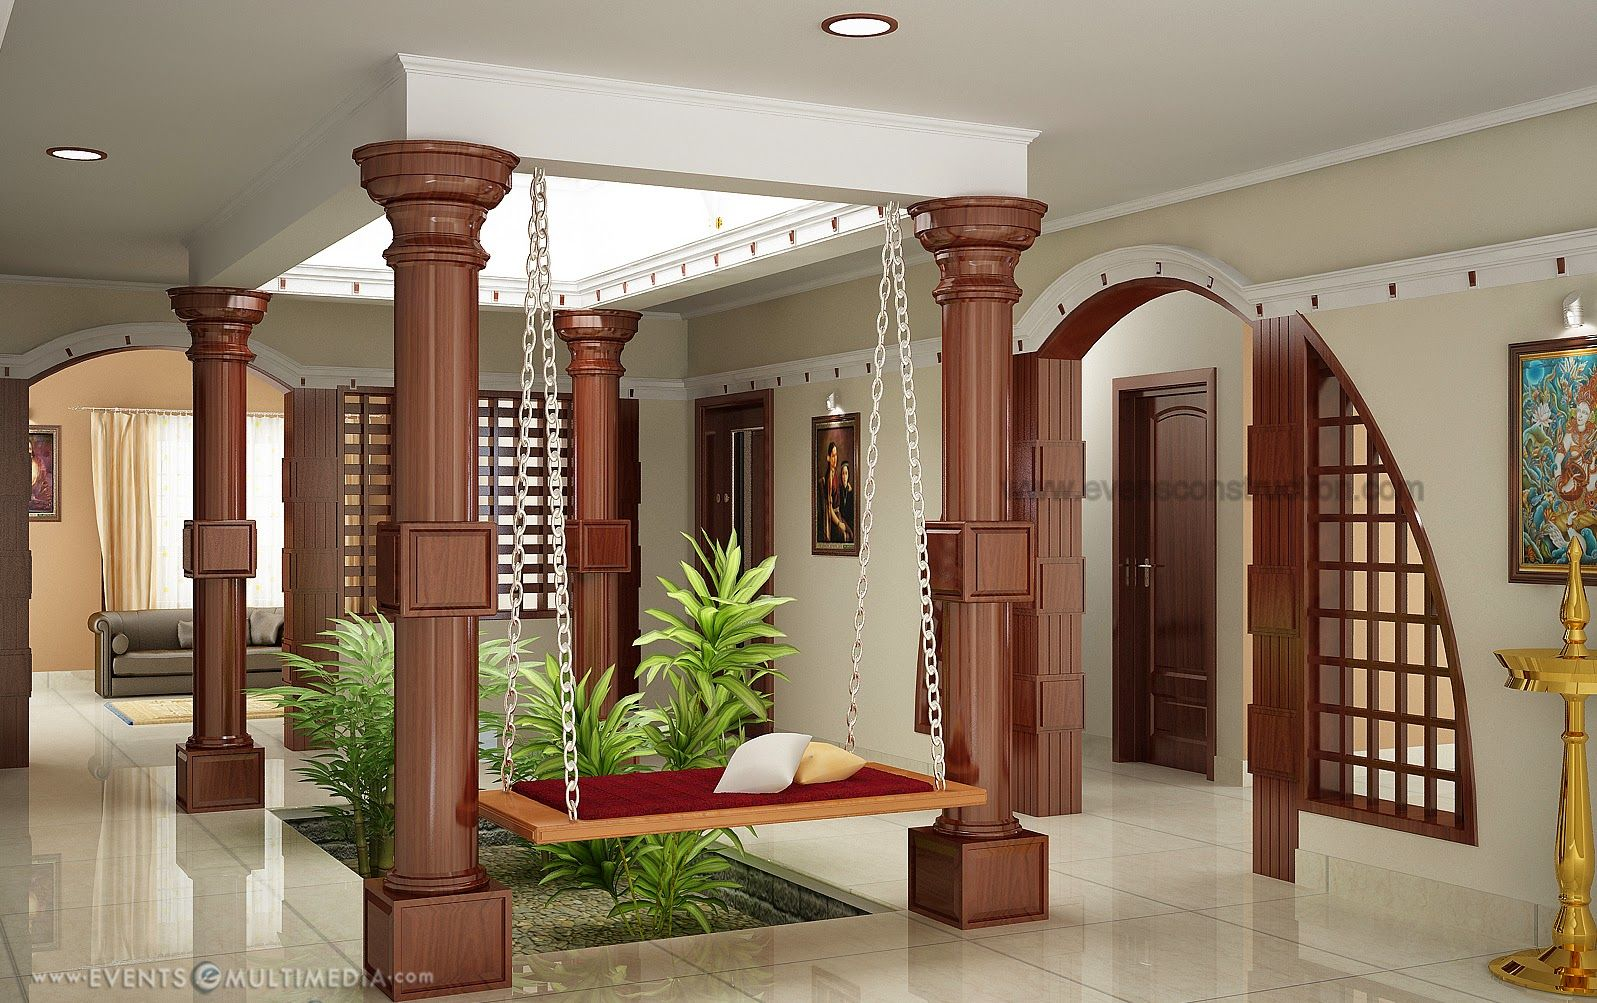 Interior design kerala google search inside and for Bathroom interior design kerala